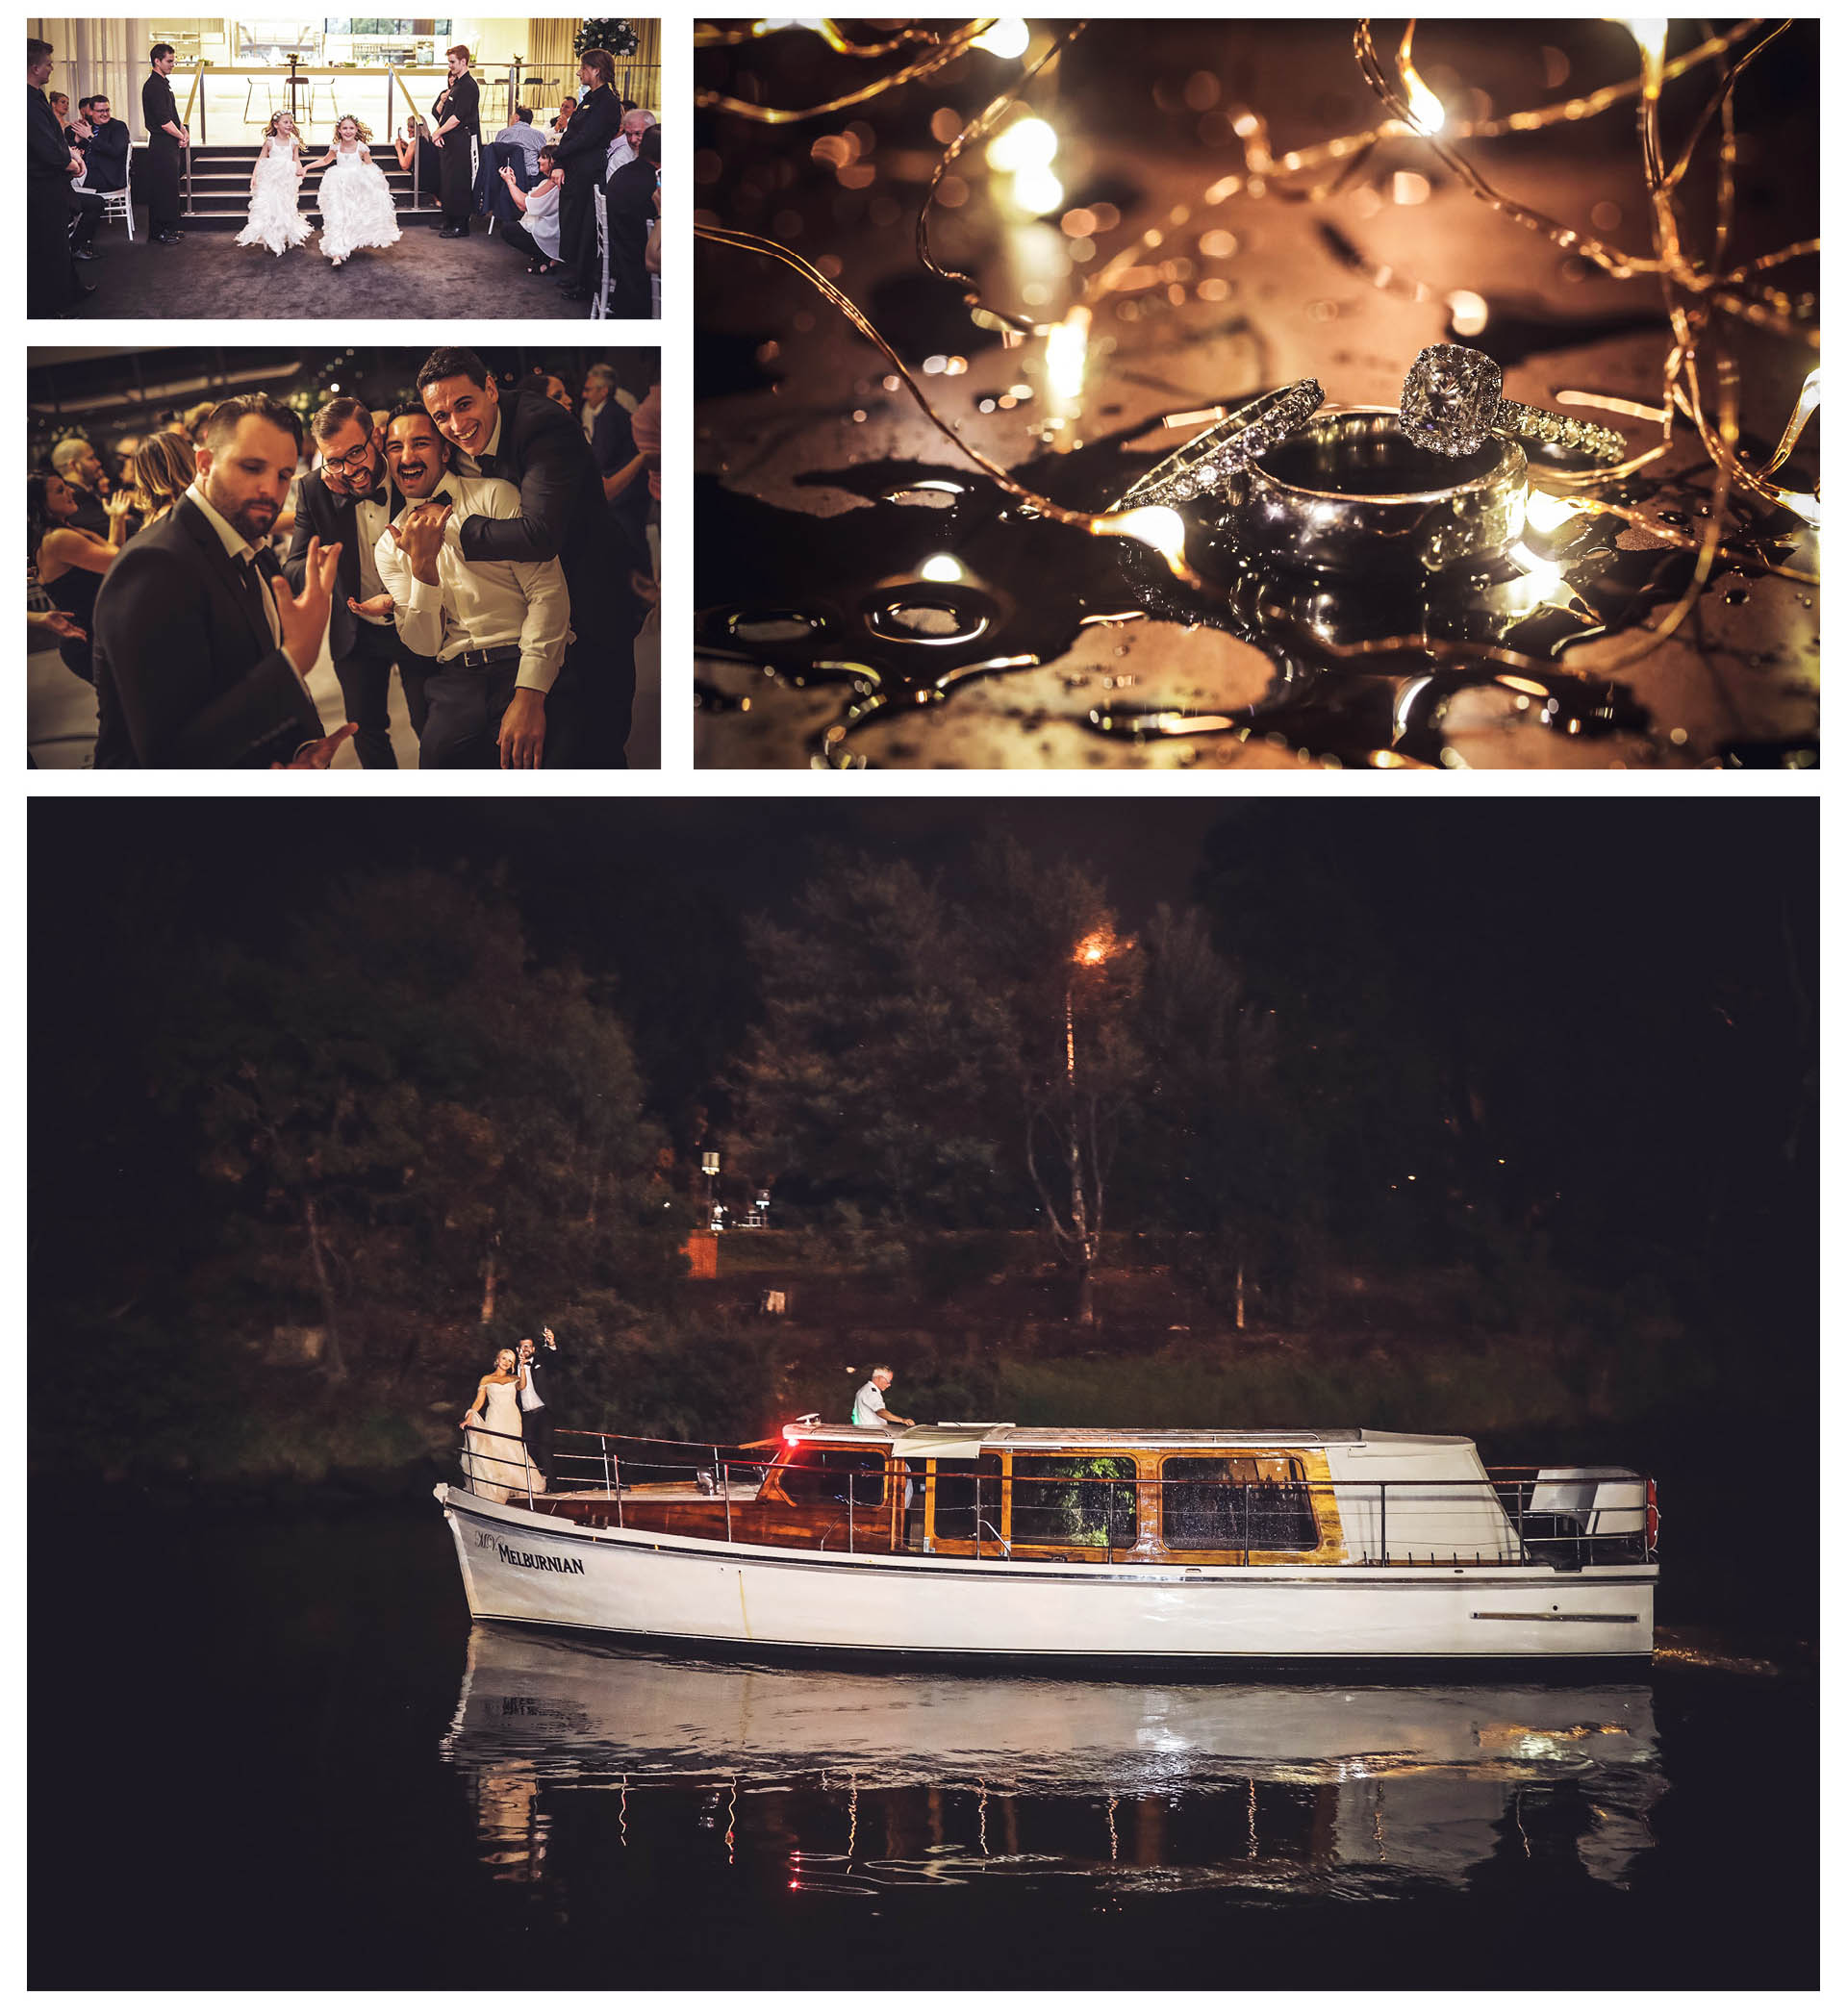 The bridegroom and bride left Leonda By The Yarra by boat under the blessing of the guests accompanied by the laughter of everyone